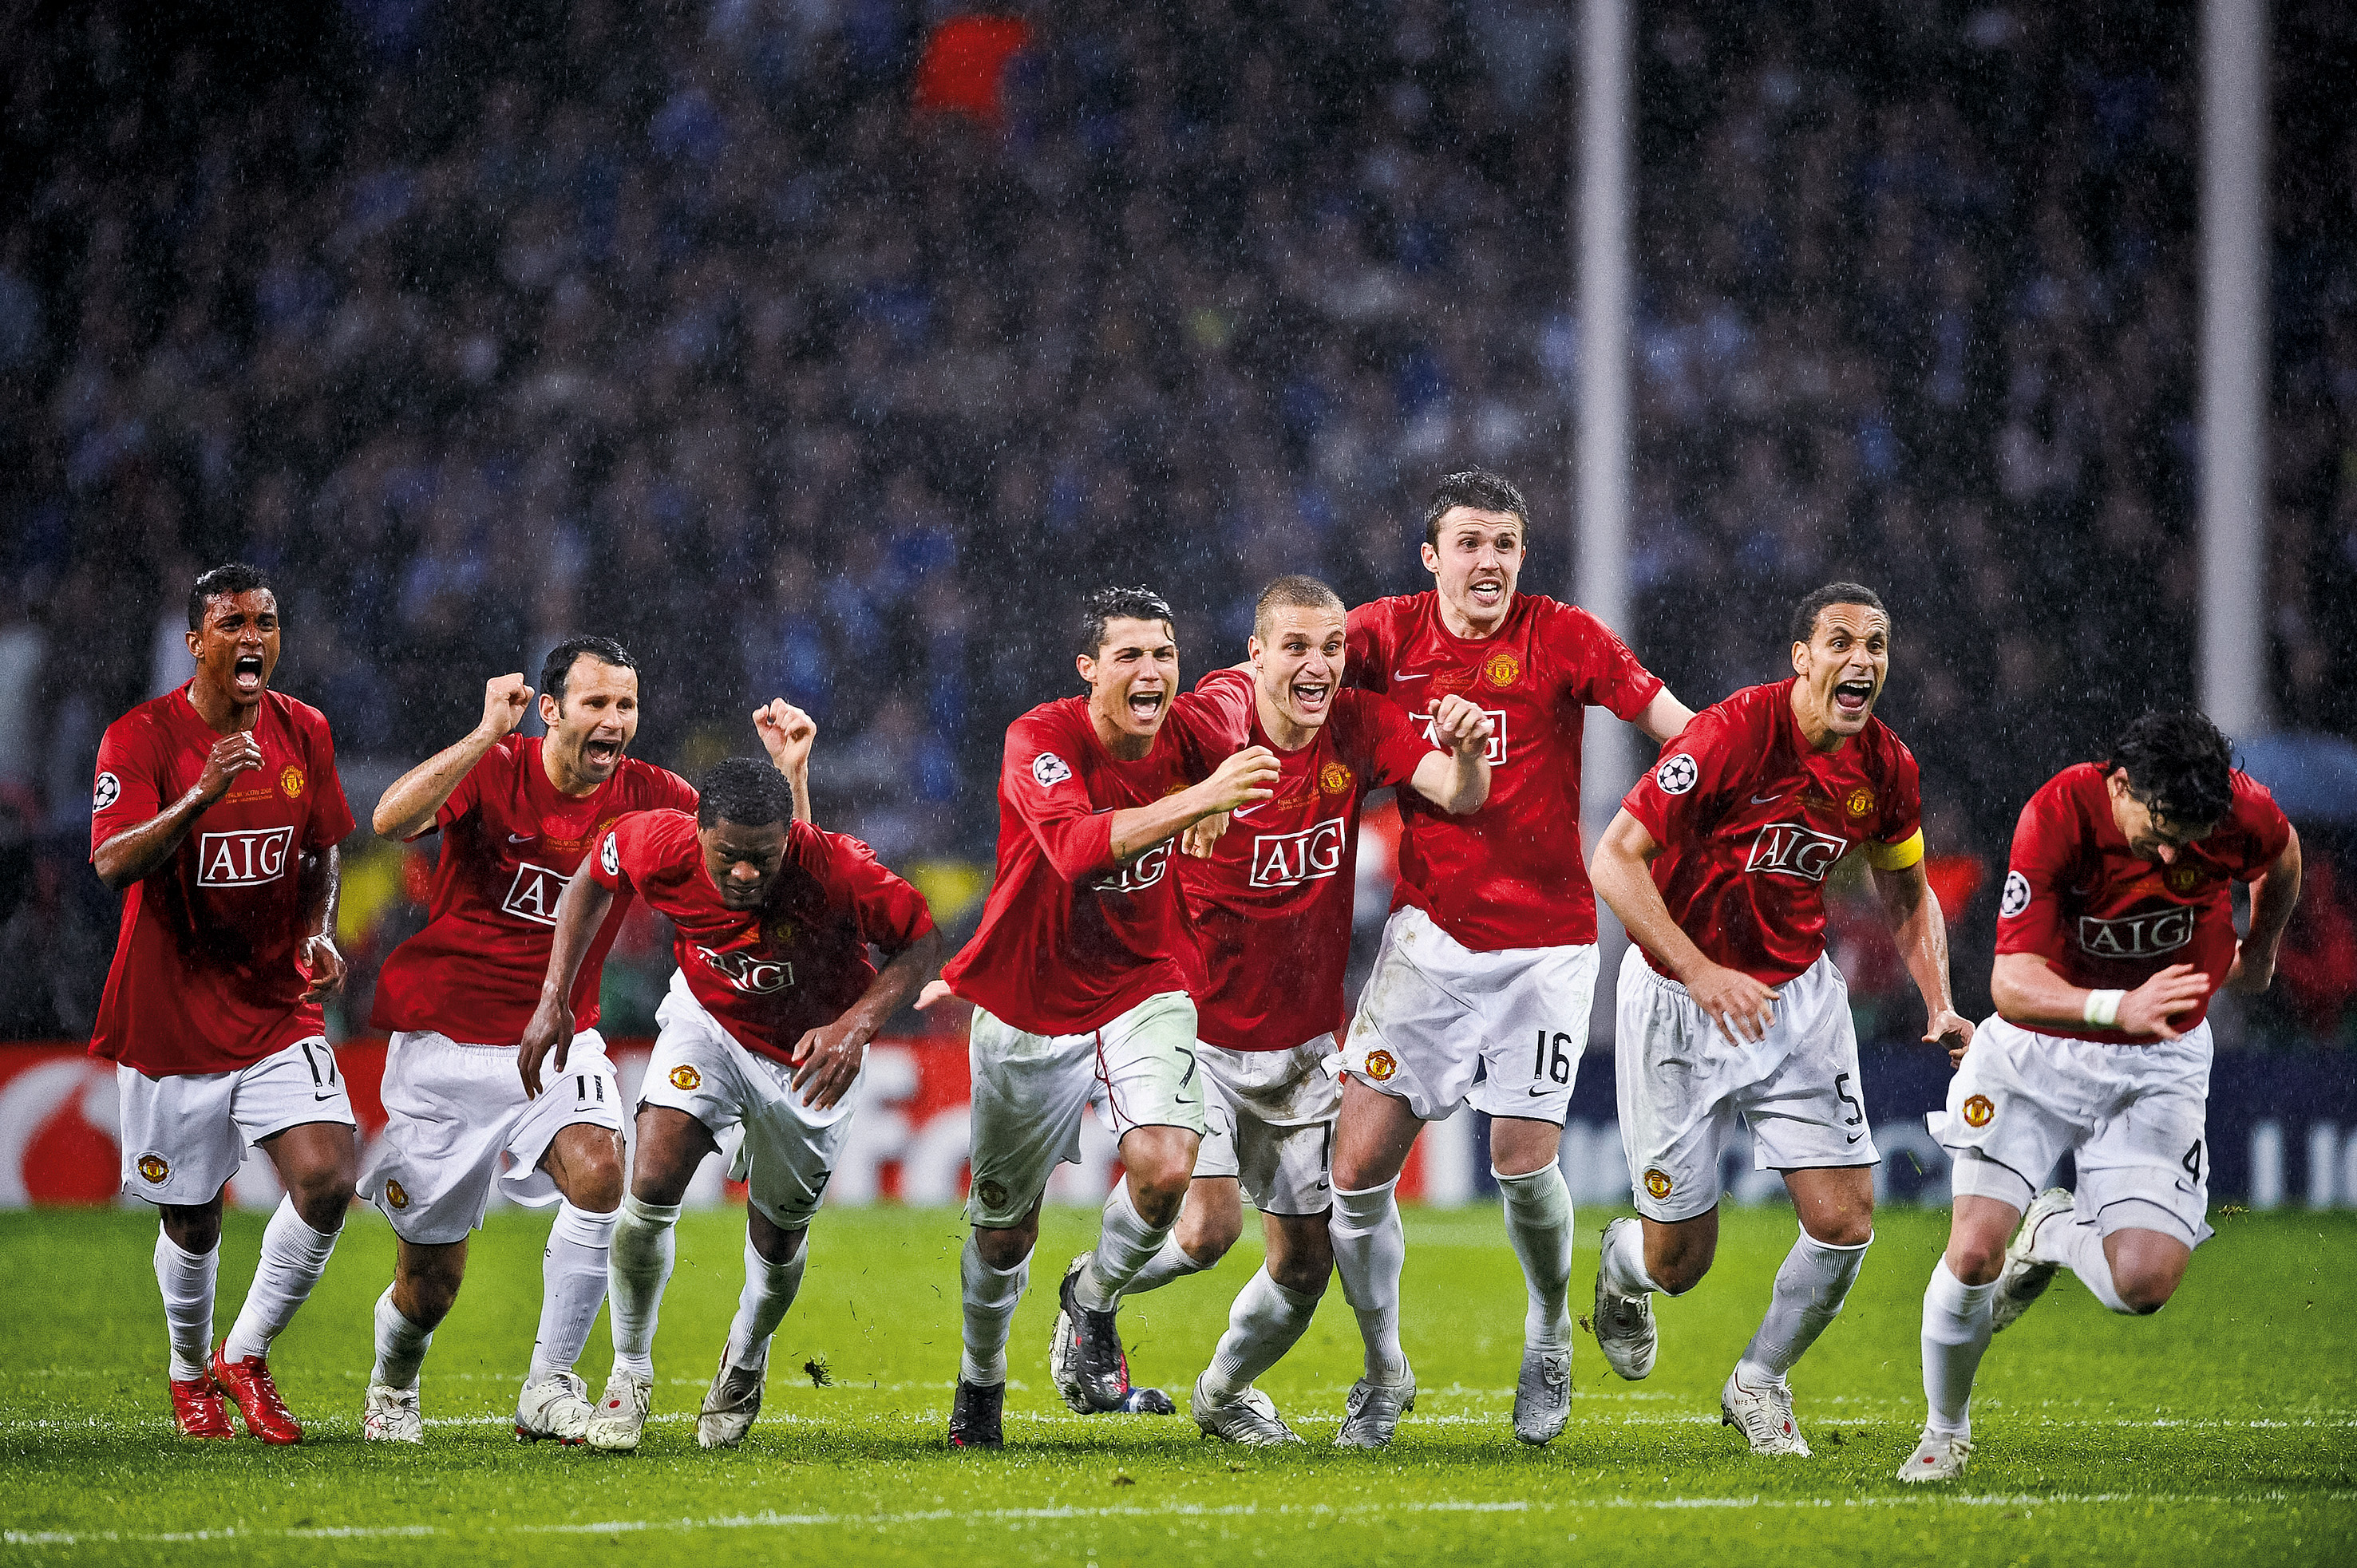 """Manchester United players celebrate the moment they win the penalty shoot-out against Chelsea in the Champions League Final at the Luzhniki Stadium on May 21st 2008 in Moscow, Russia (Photo by Tom Jenkins/Getty Images). An image from the book """"In The Moment"""" published June 2012"""